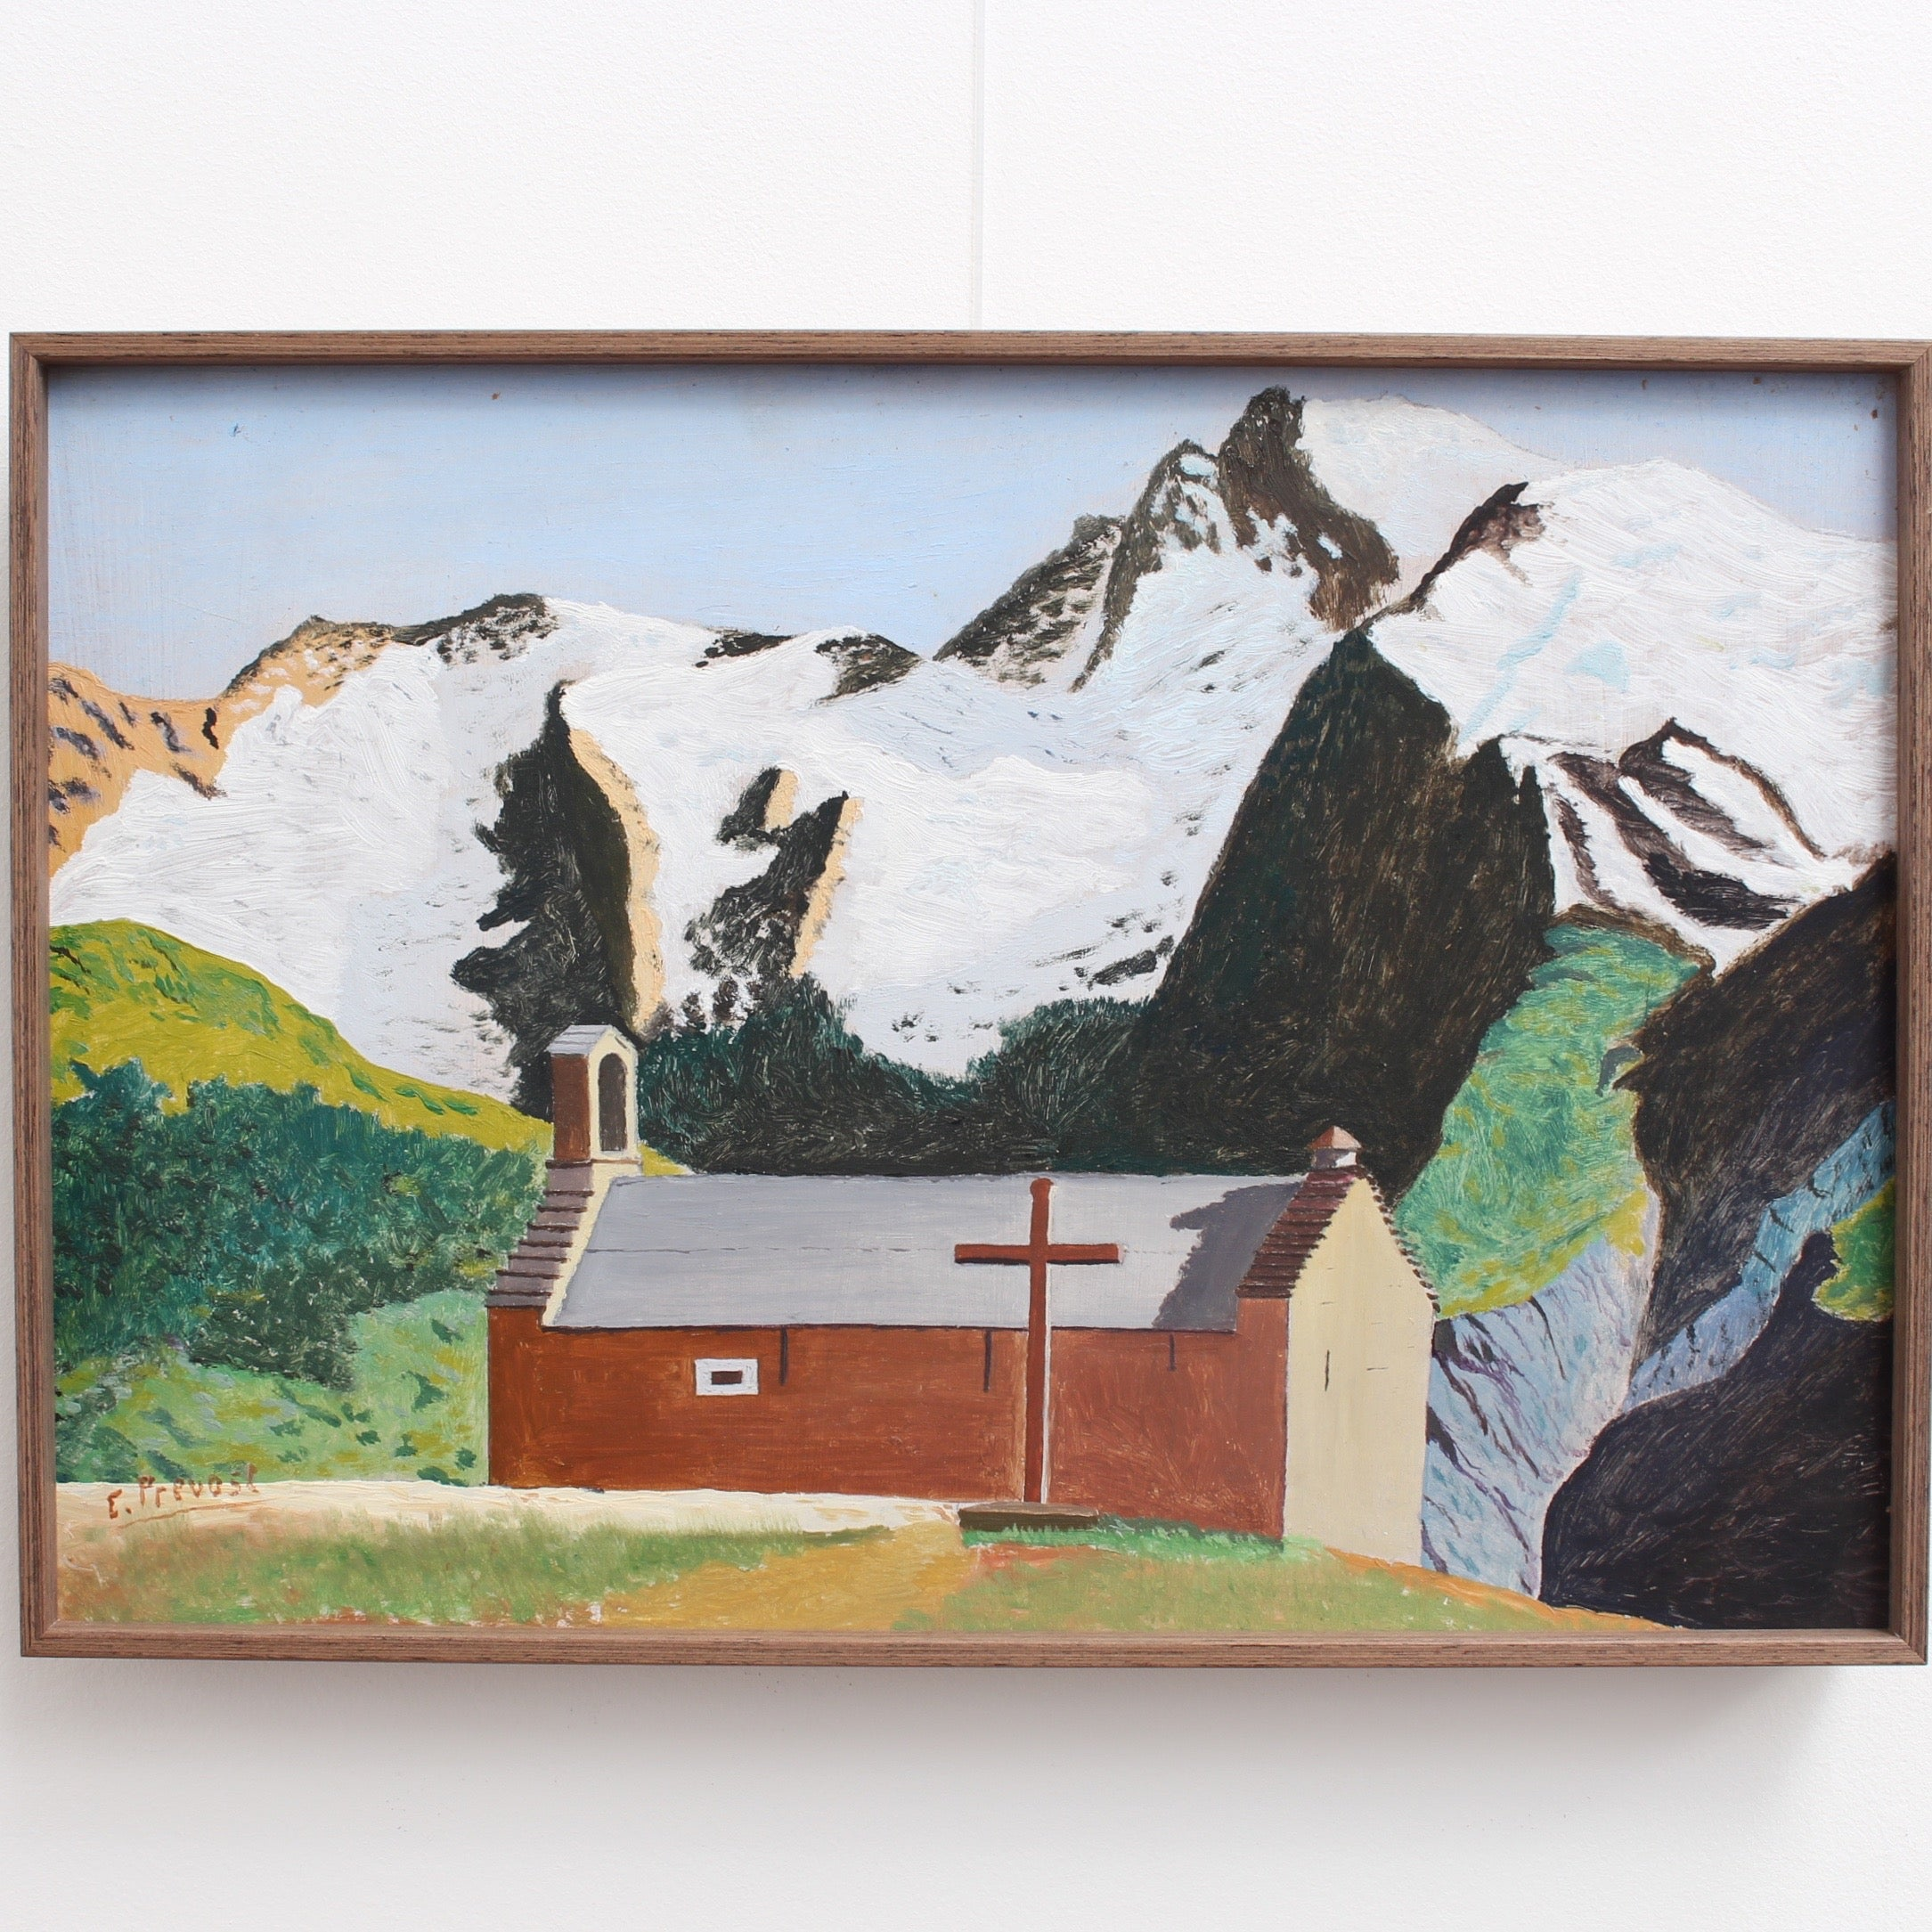 'Chapel in the Swiss Alps' by E. Prevost (circa 1970s)